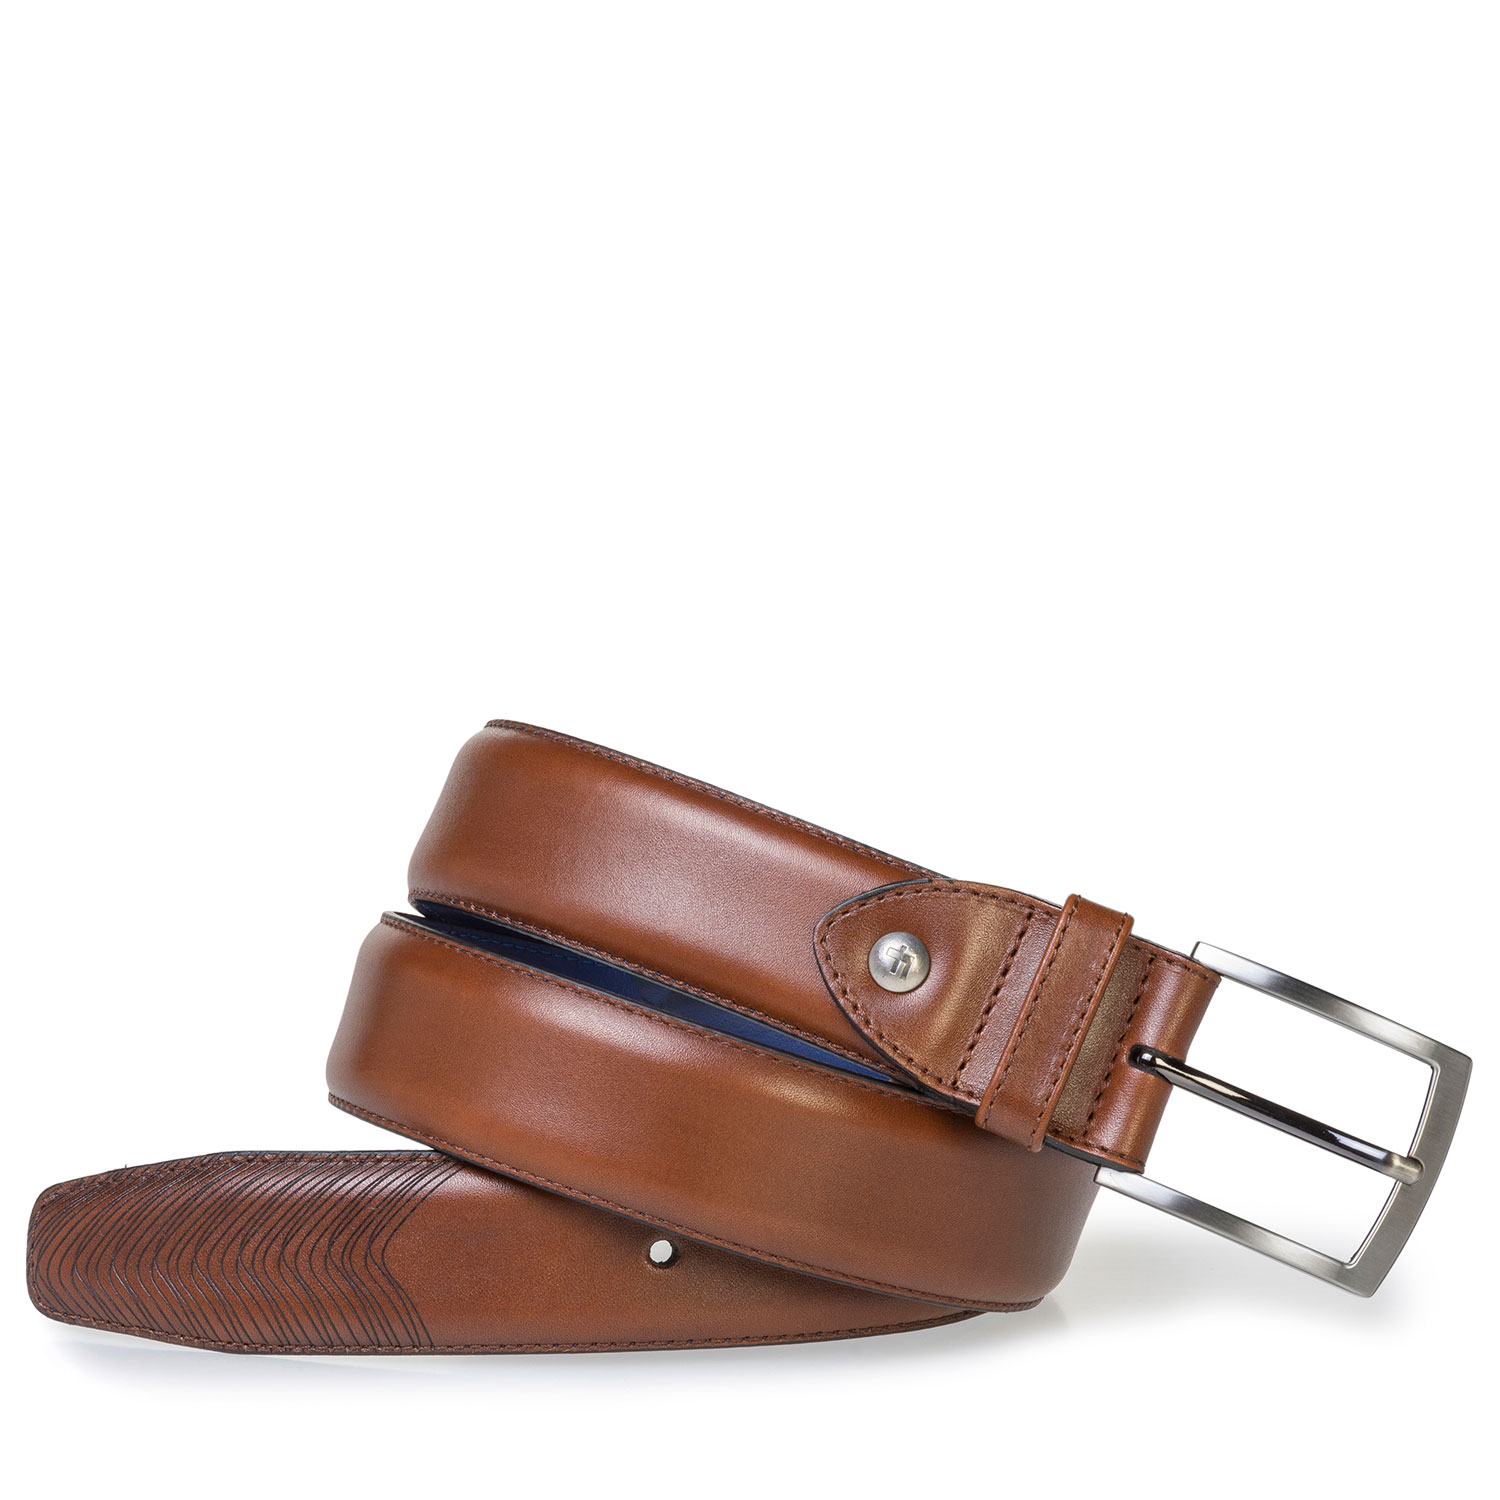 75216/00 - Dark cognac-coloured calf leather belt